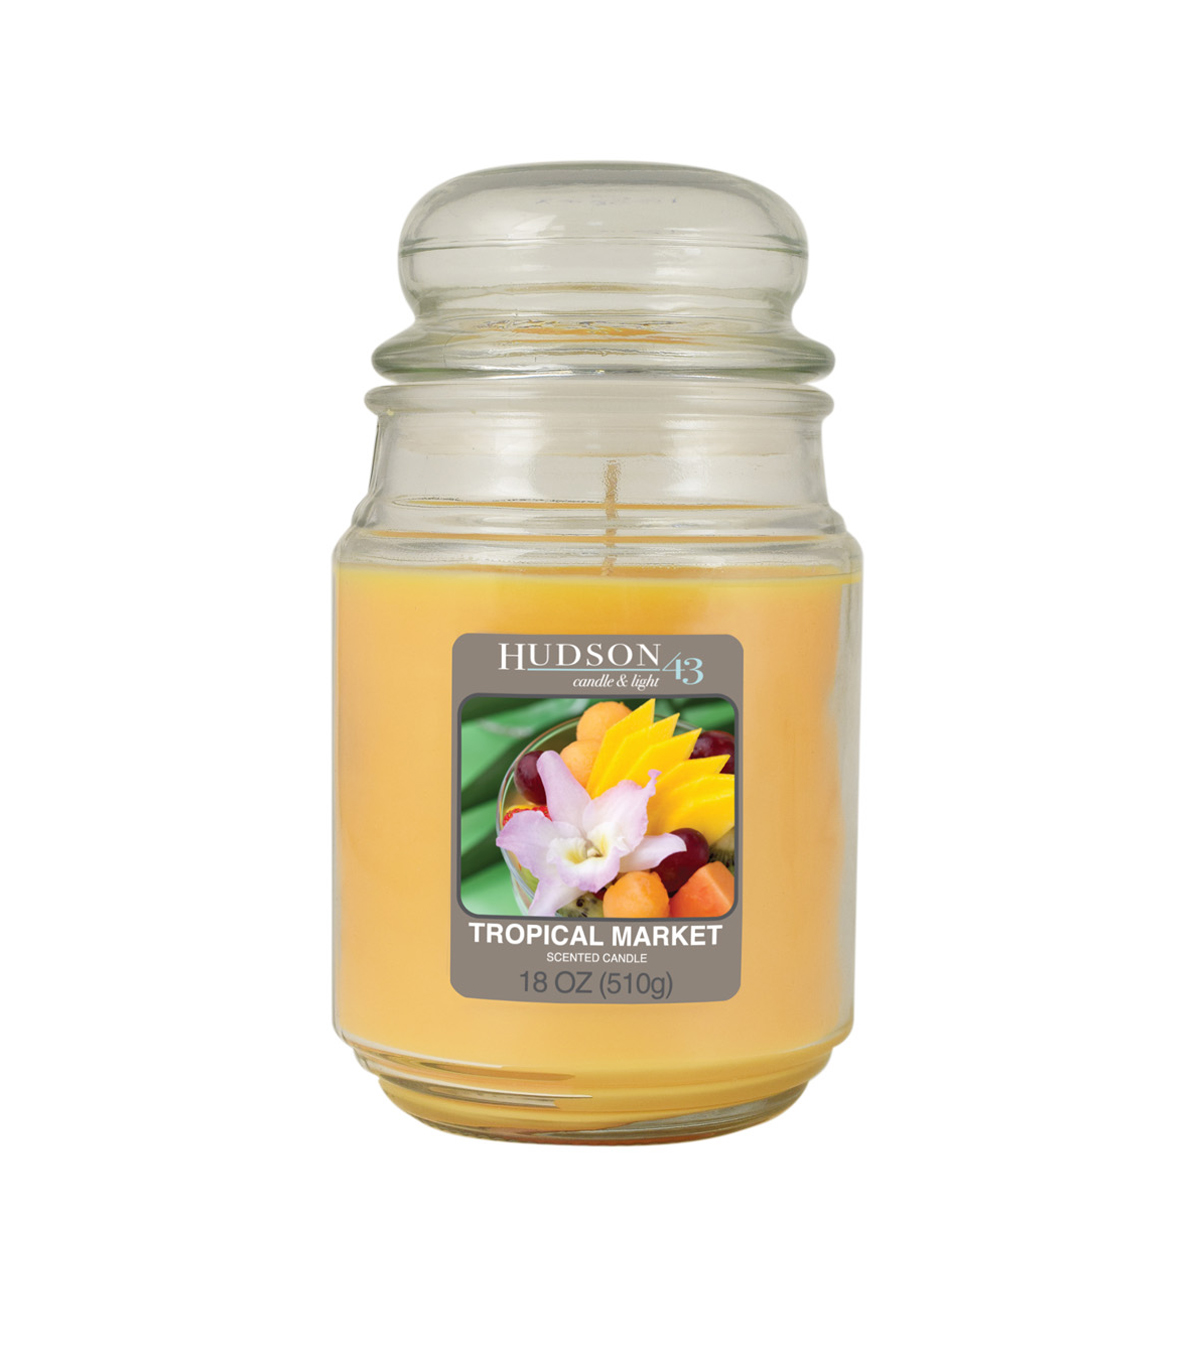 Hudson 43 Candle & Light Collection 18oz Value Jar Tropical Market